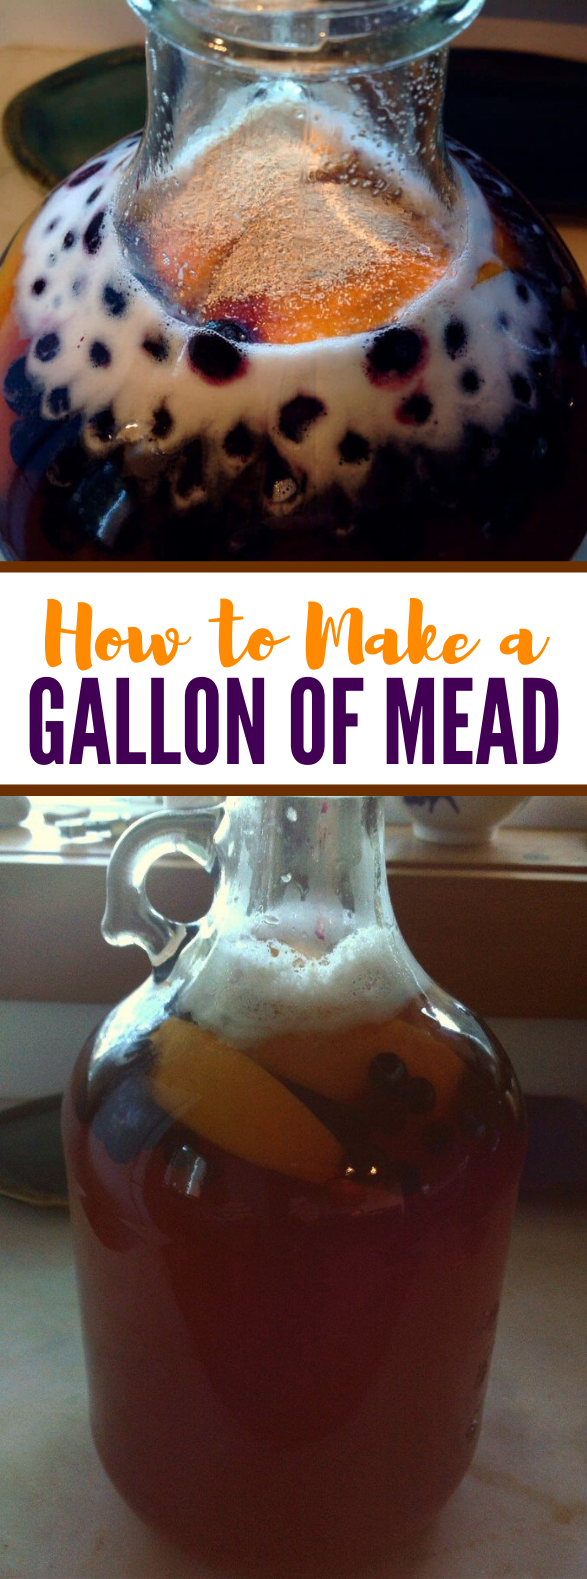 Simple One Gallon Mead Recipe #drinks #healthy